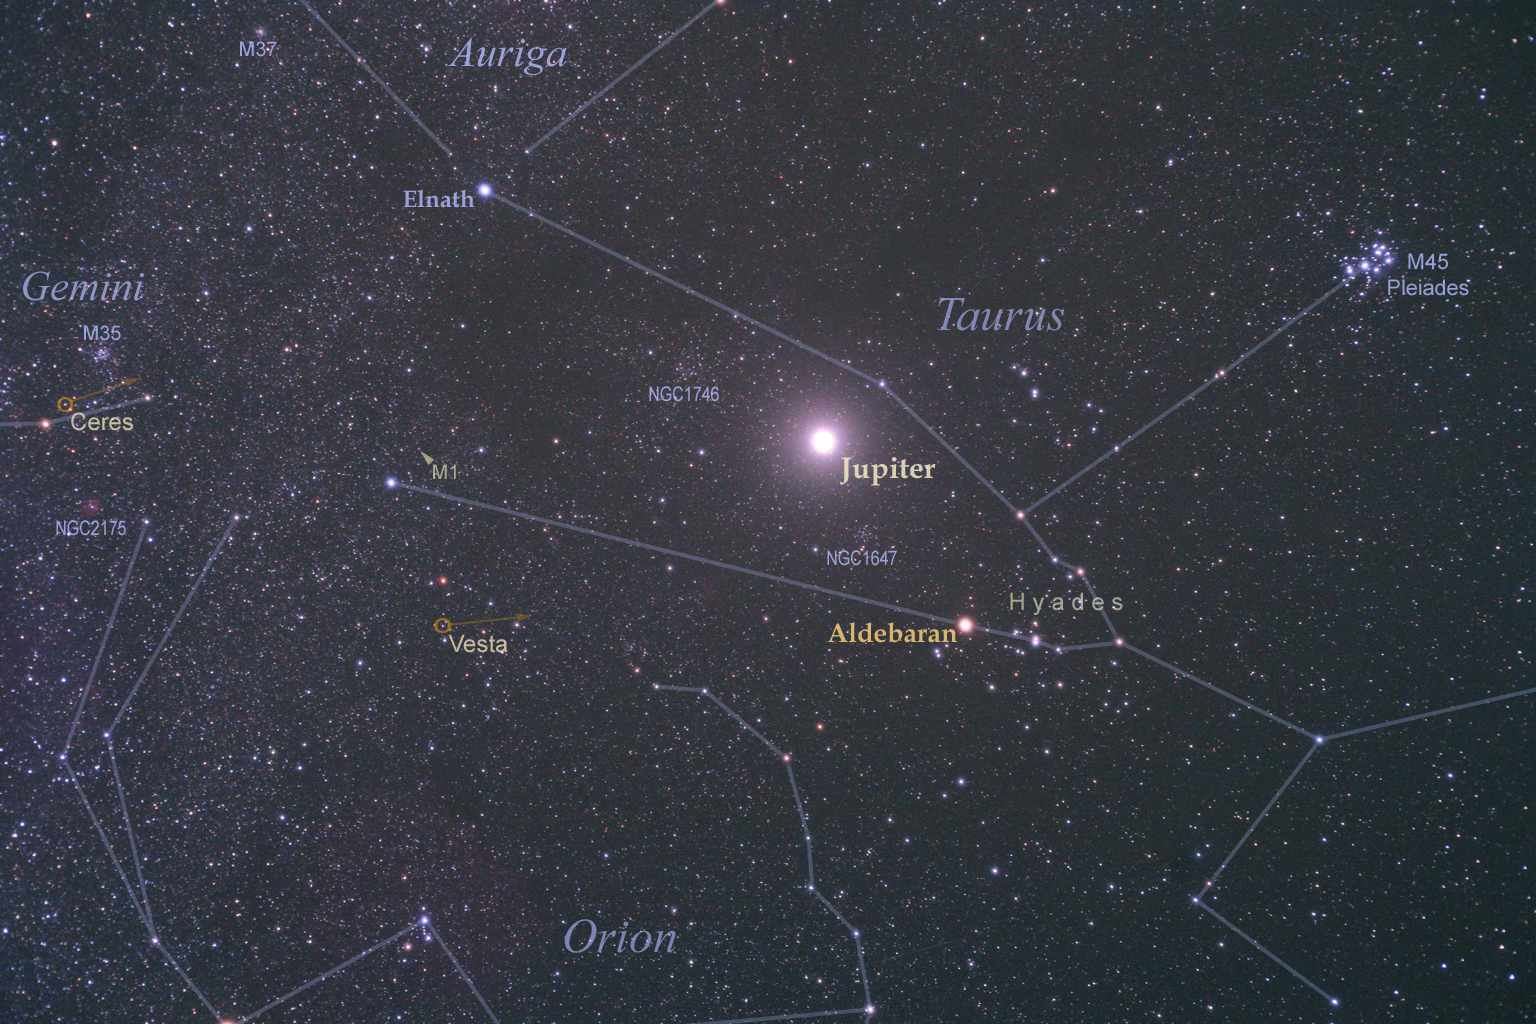 27 November Sterrenbeeld Apod 27 November 2012 Heldere Jupiter In Taurus